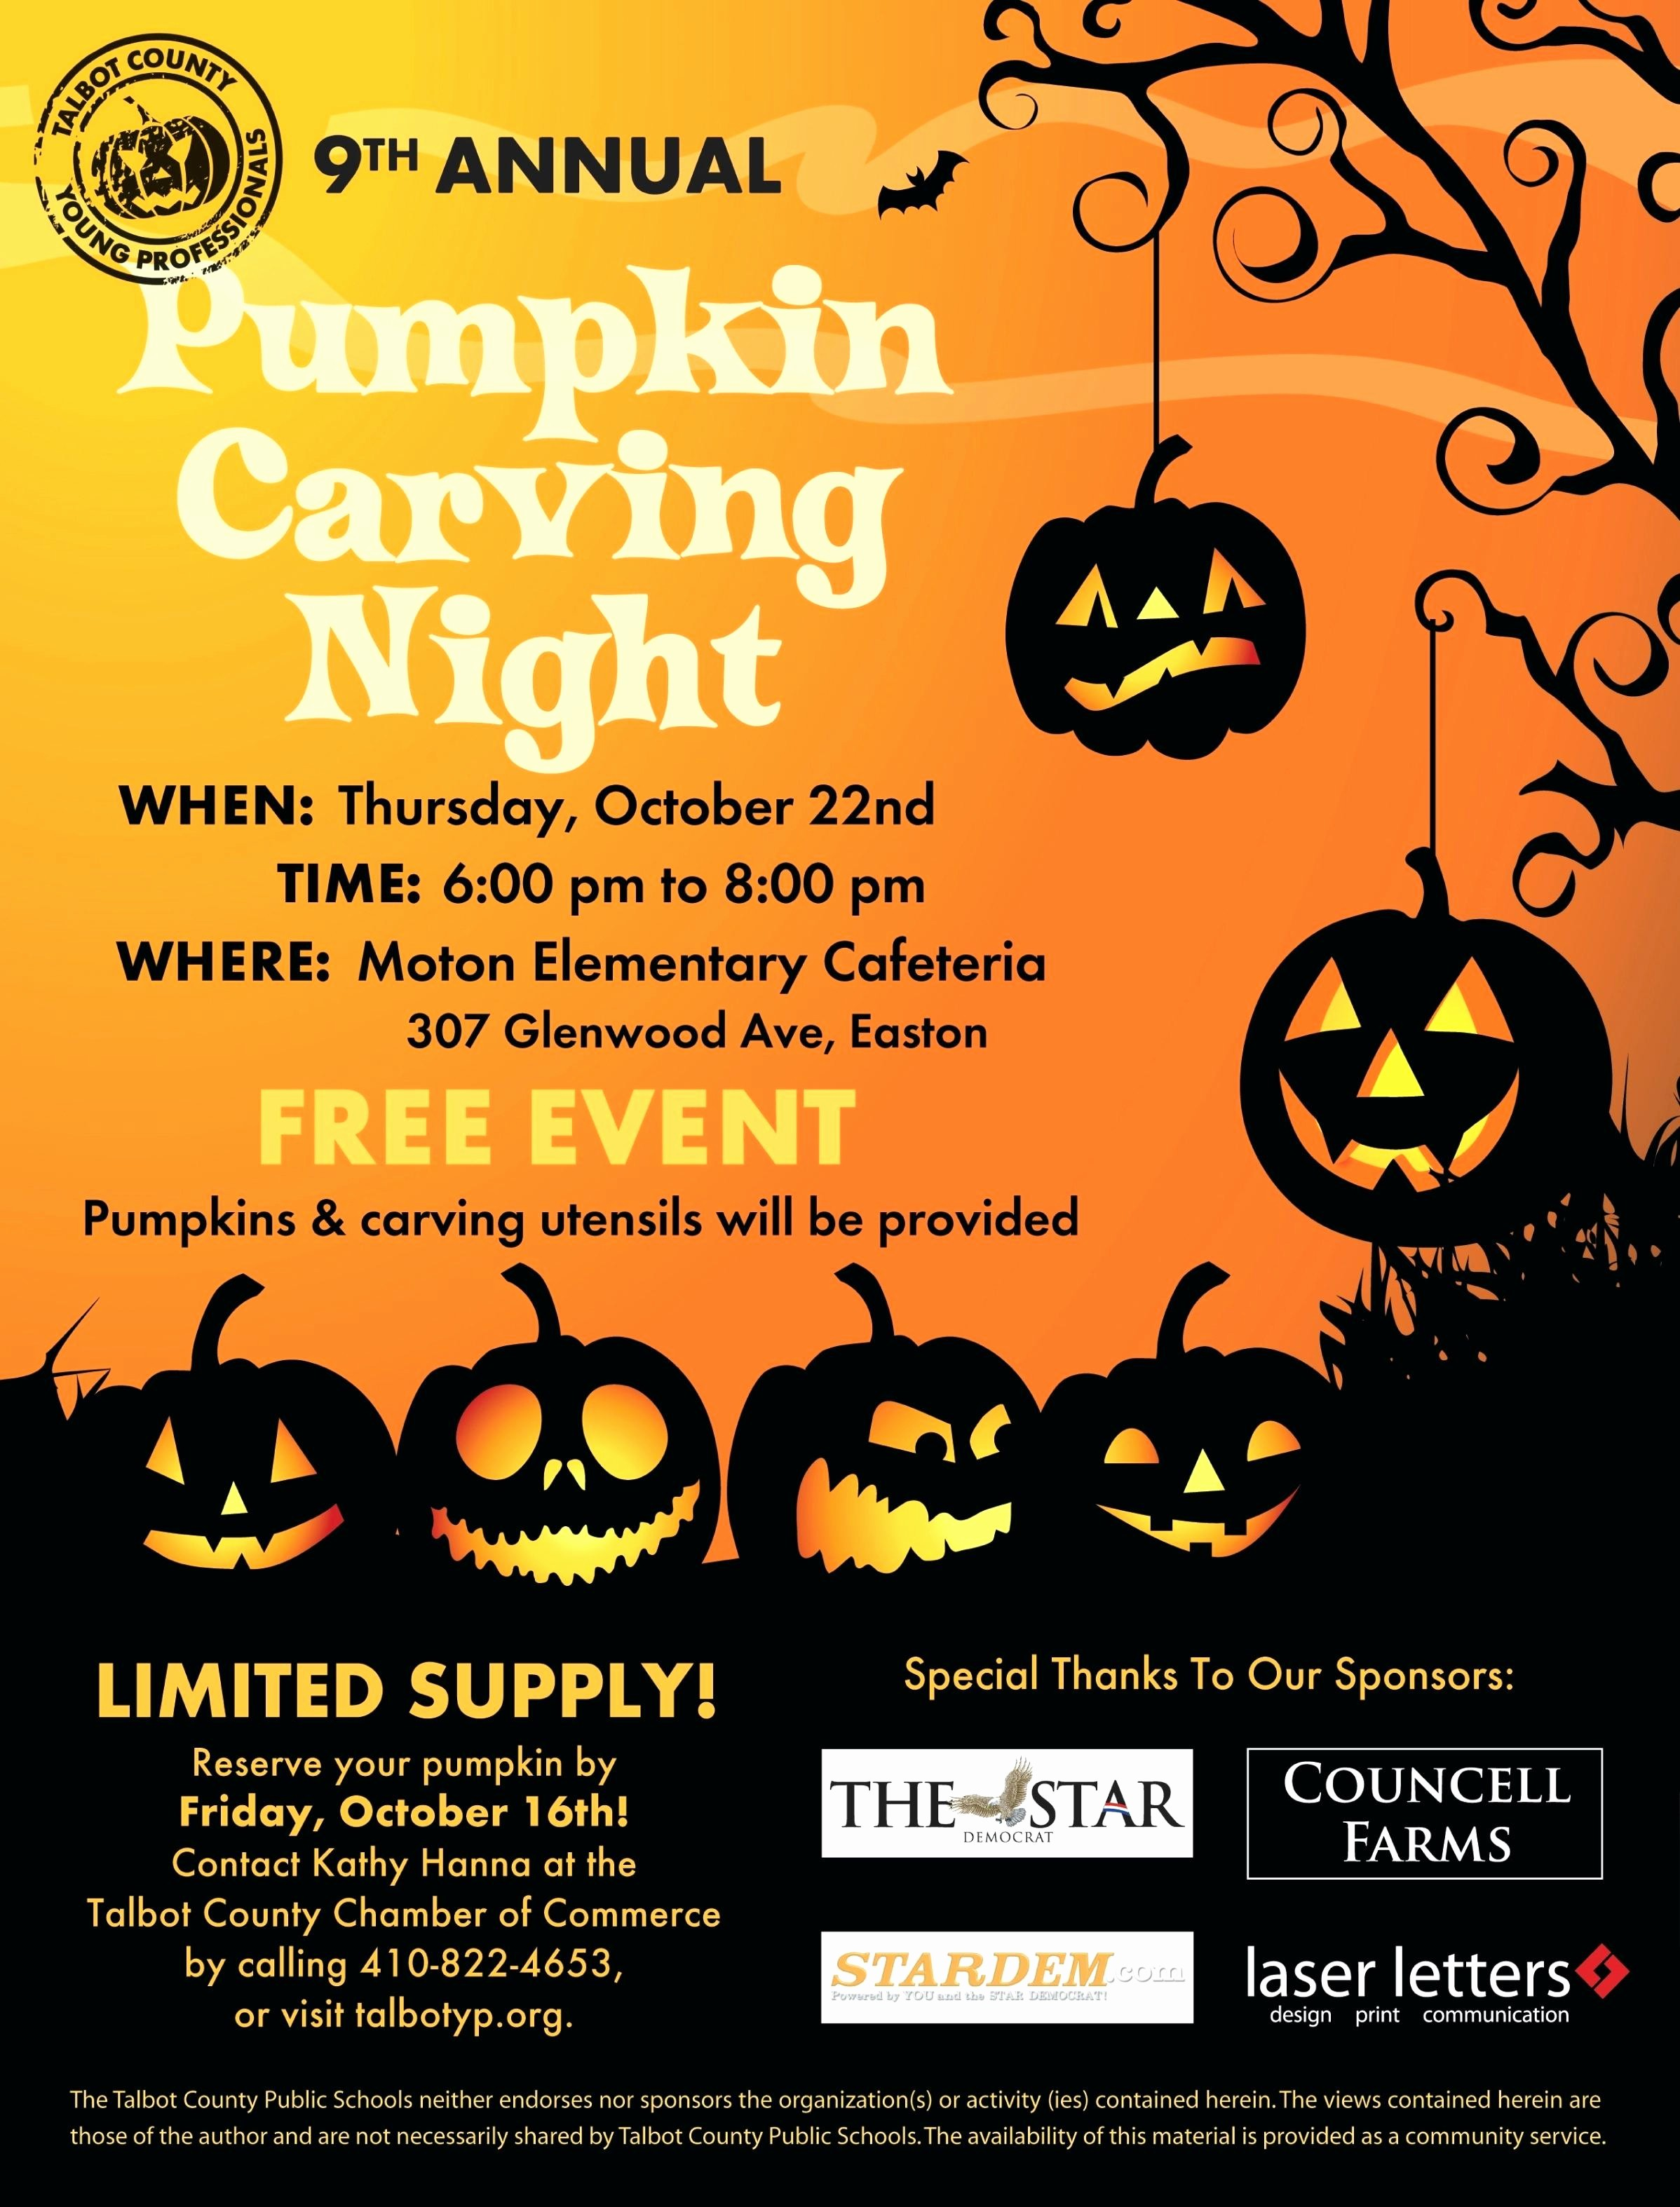 Pumpkin Carving Contest Flyer Template New Template Pumpkin Carving Contest Flyer Template Night